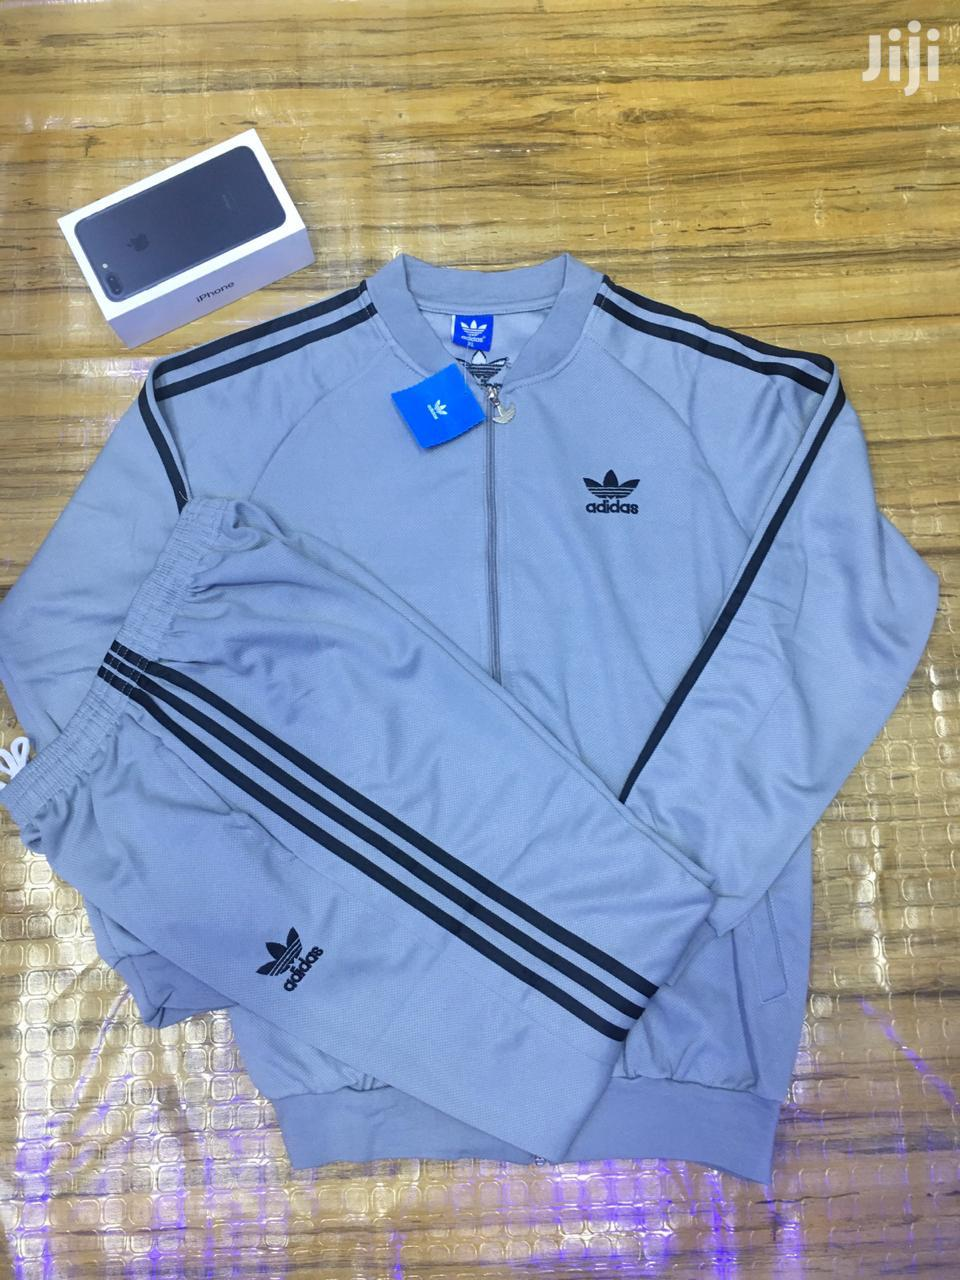 Offer On Adidas Tracksuit (Cotton)